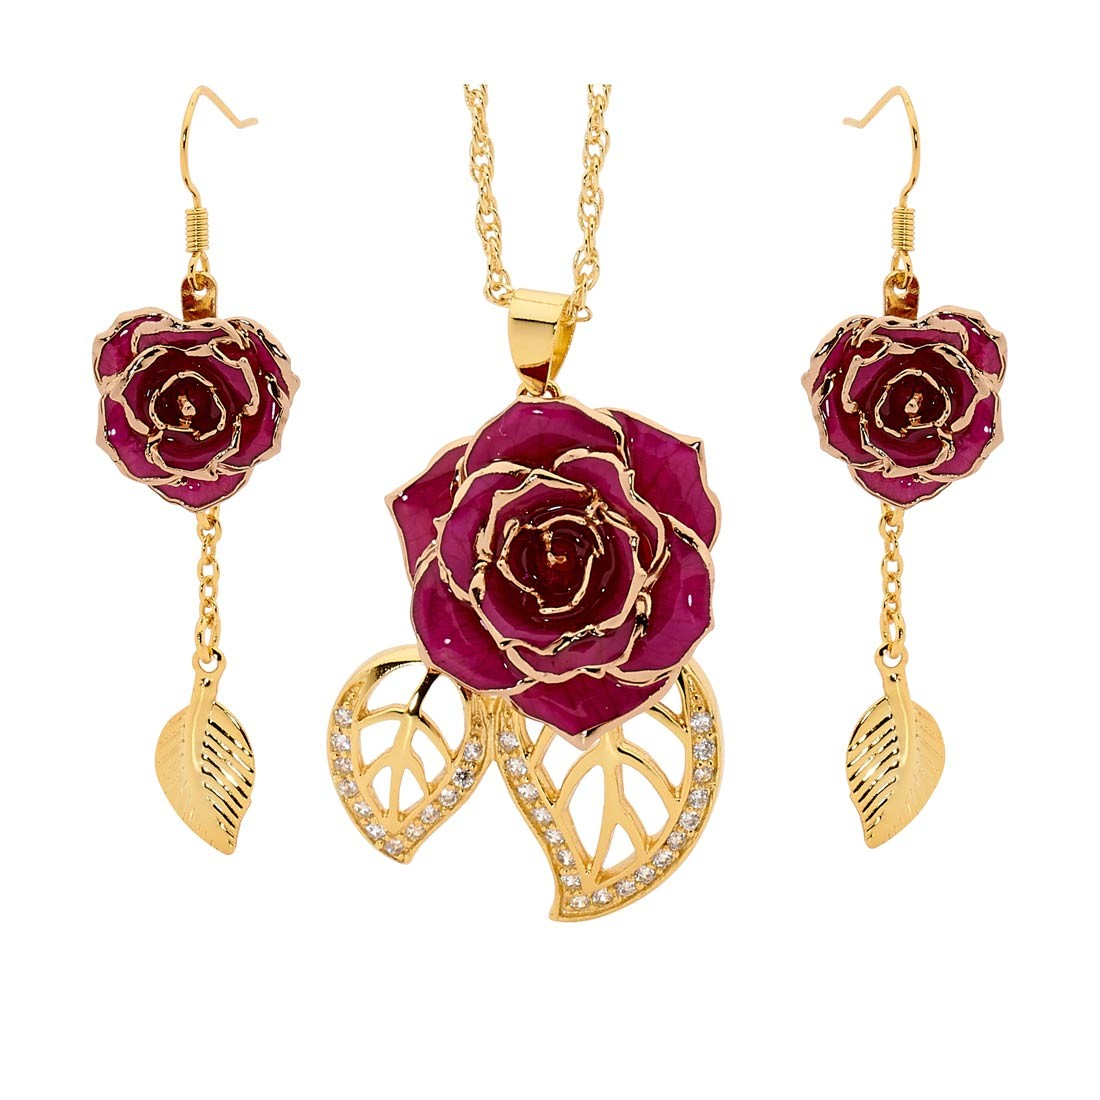 Gold Dipped Rose   Purple Matched Jewelry Set in Leaf Theme 6e5c8185b6